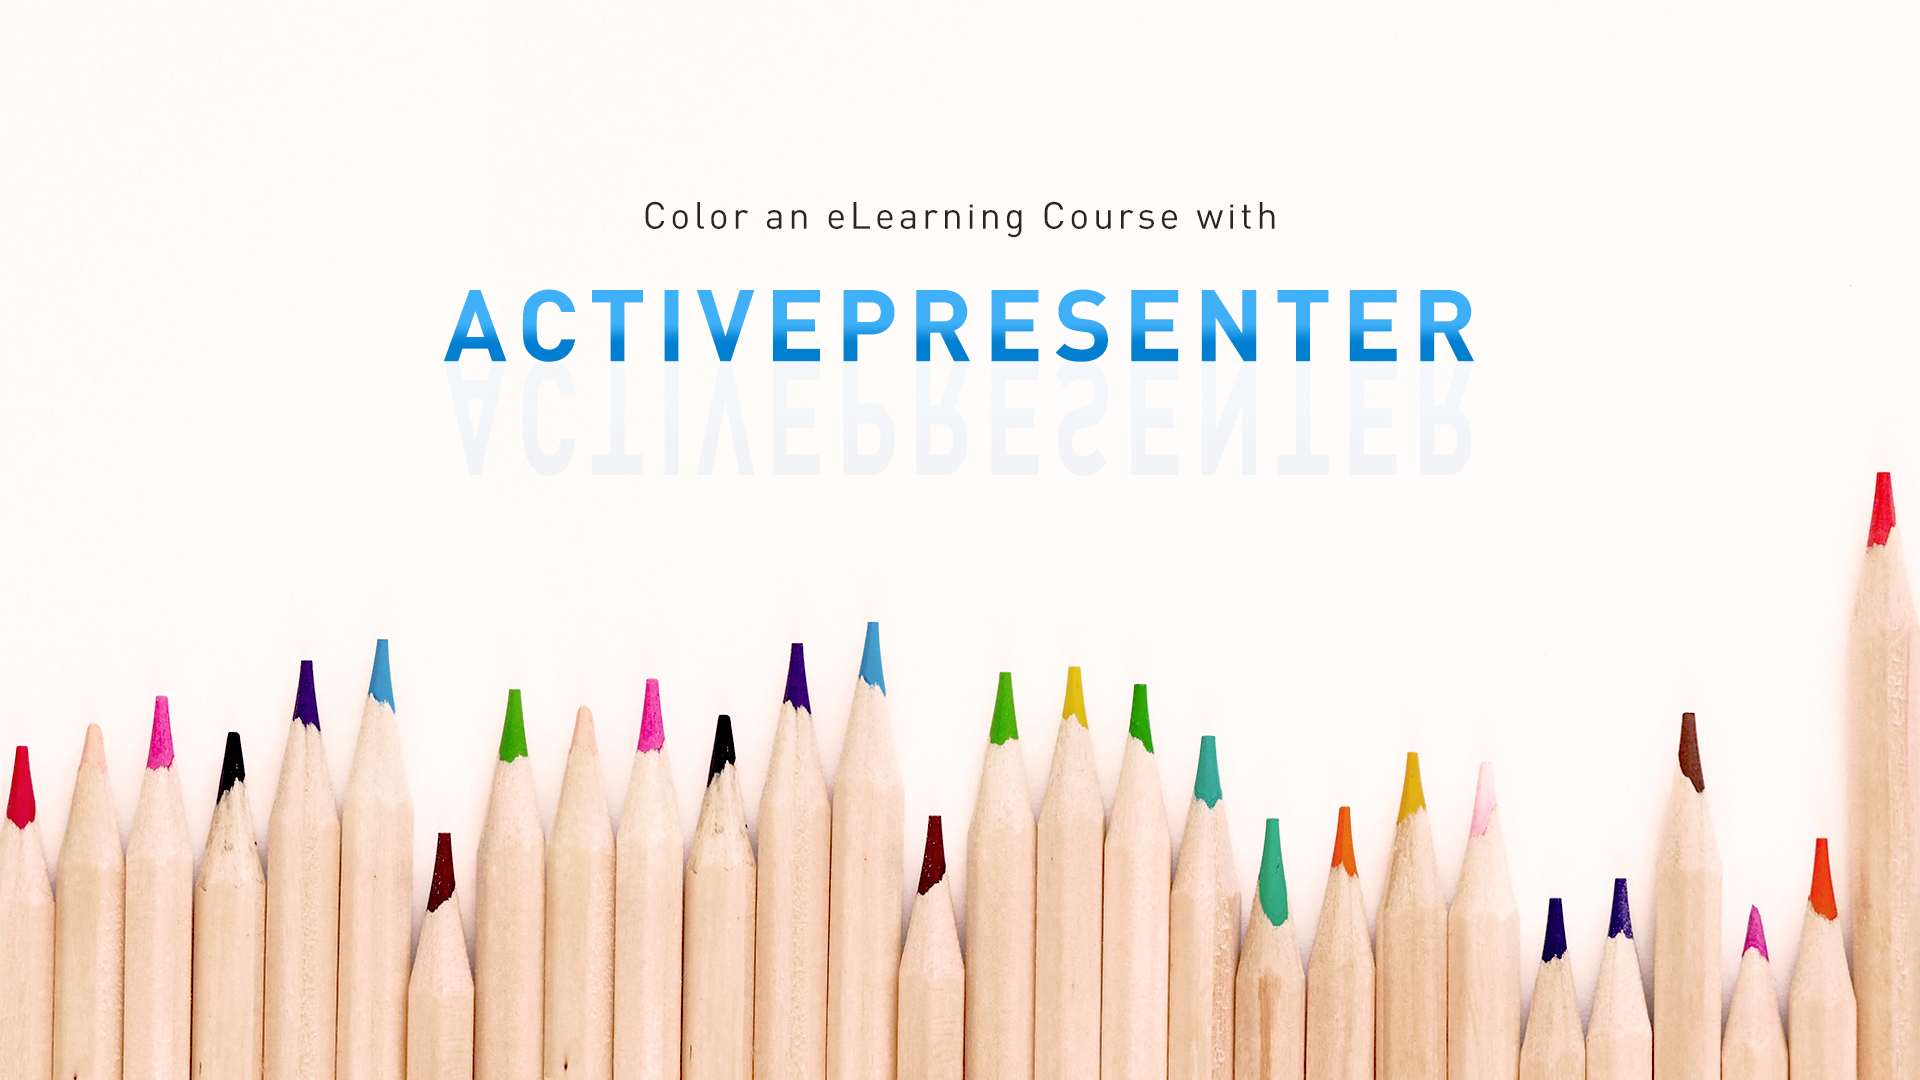 Color an eLearning Course with ActivePresenter